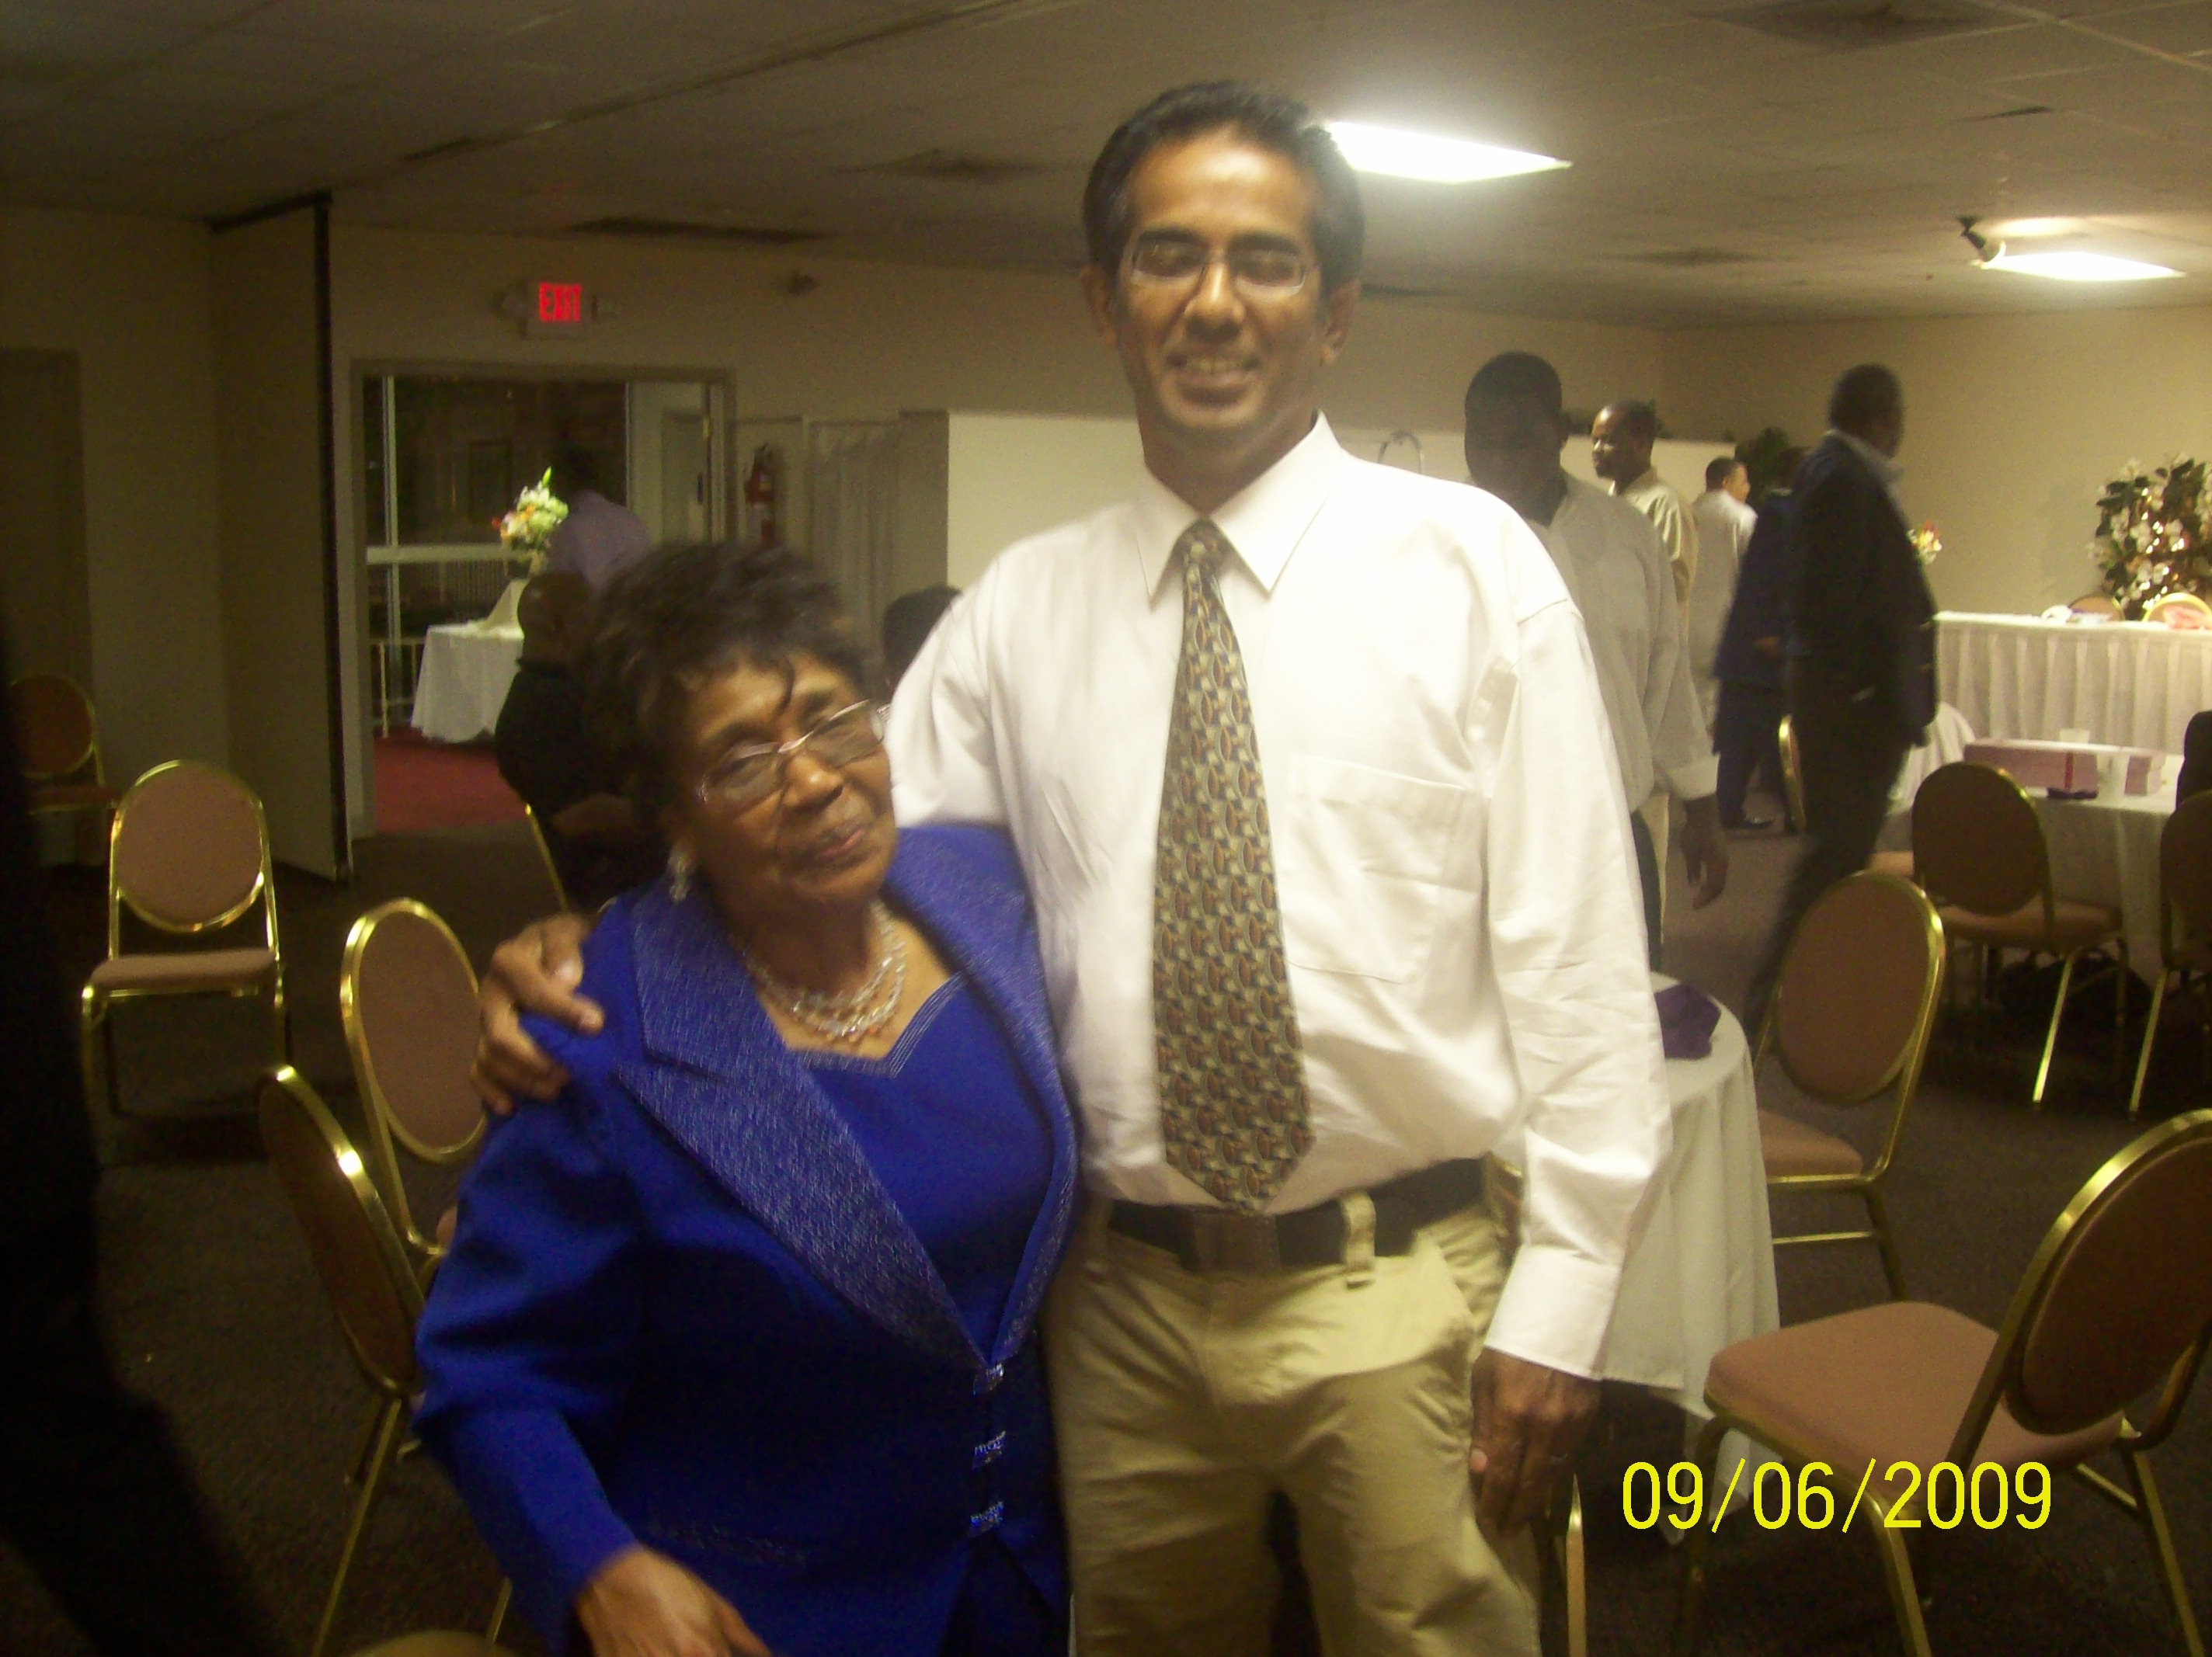 My great aunt and M